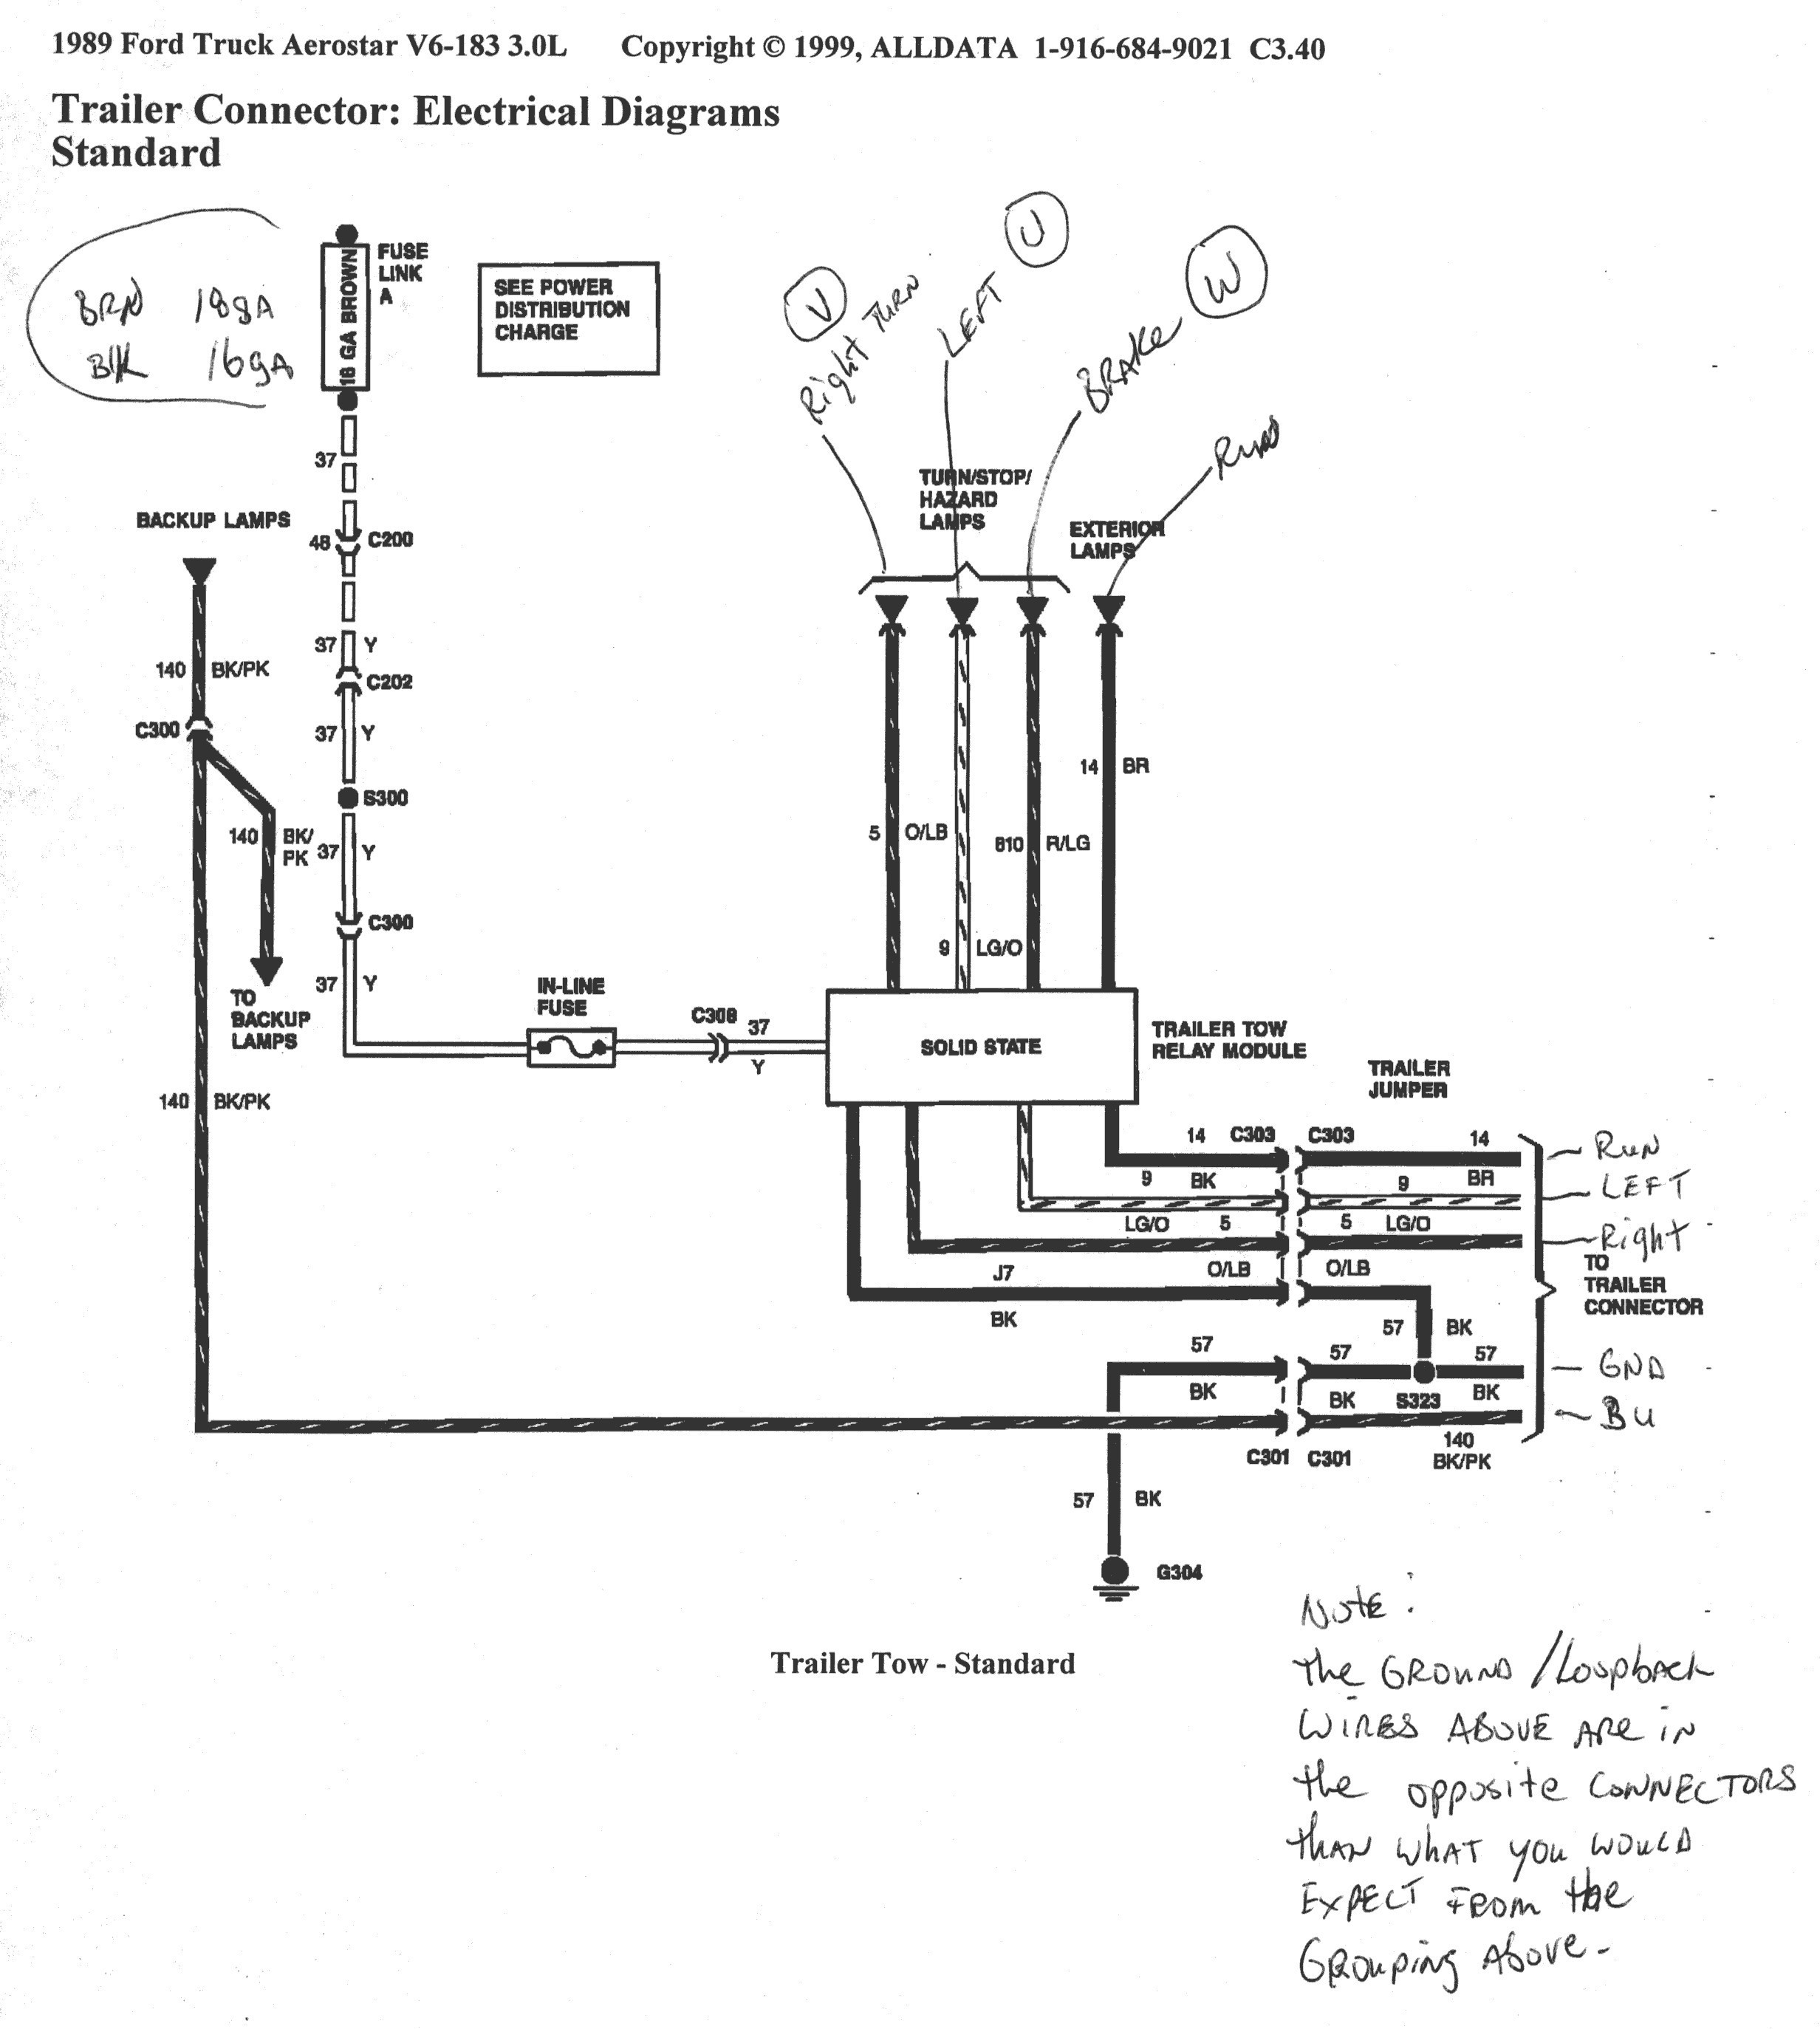 ford light wiring - wiring diagram schema doug-head-a -  doug-head-a.atmosphereconcept.it  atmosphereconcept.it